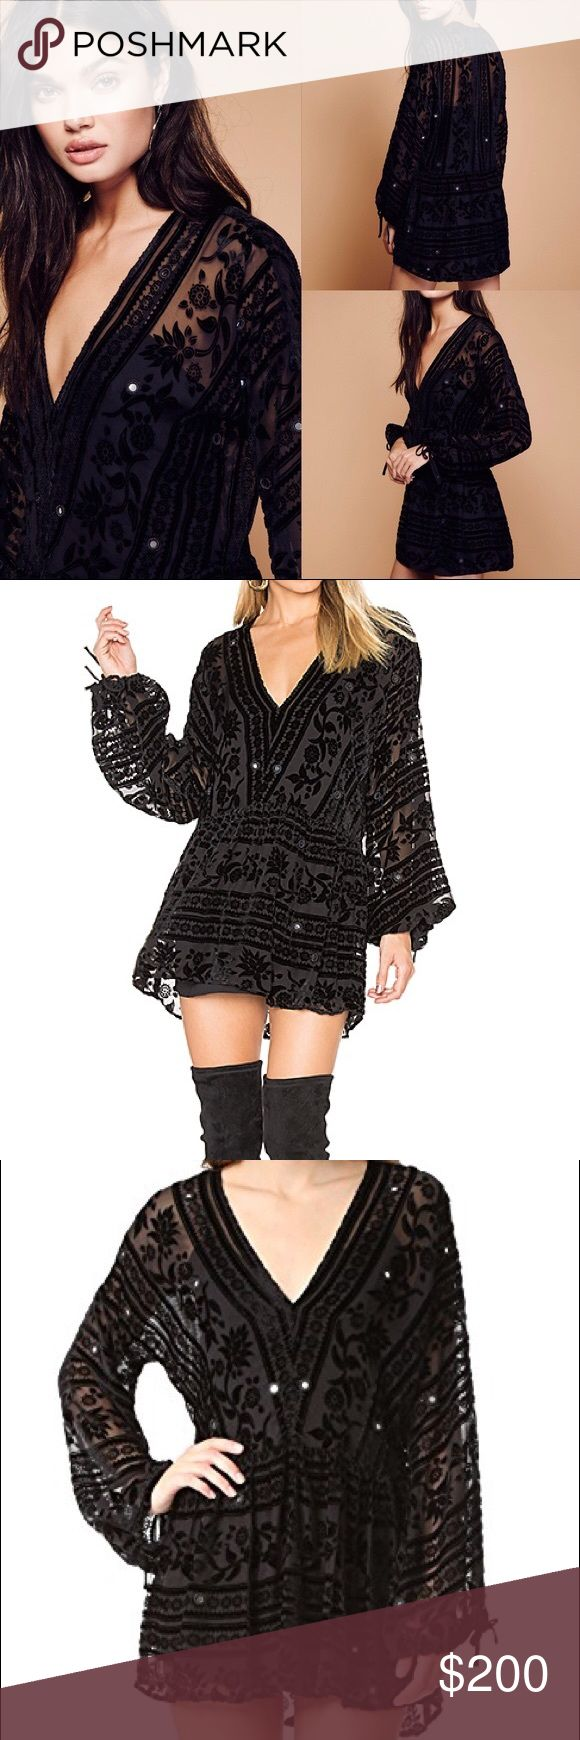 🆕 For Love&Lemons J'adore Mini Dress - Size M ✨ Channel Penny Lane in the perfect bohemian LBD ✨✨✨ Sold out everywhere. Never been worn 🆕 For Love & Lemons J'Adore Mini Dress in Black features mirror details and delicate floral velvet pattern on sheer silk rayon. Includes matching For Love & Lemons plunging-V slip dress - perfect enough to wear alone. Pair with thigh-high boots or layer over black jeans and leggings! For Love And Lemons Dresses Mini